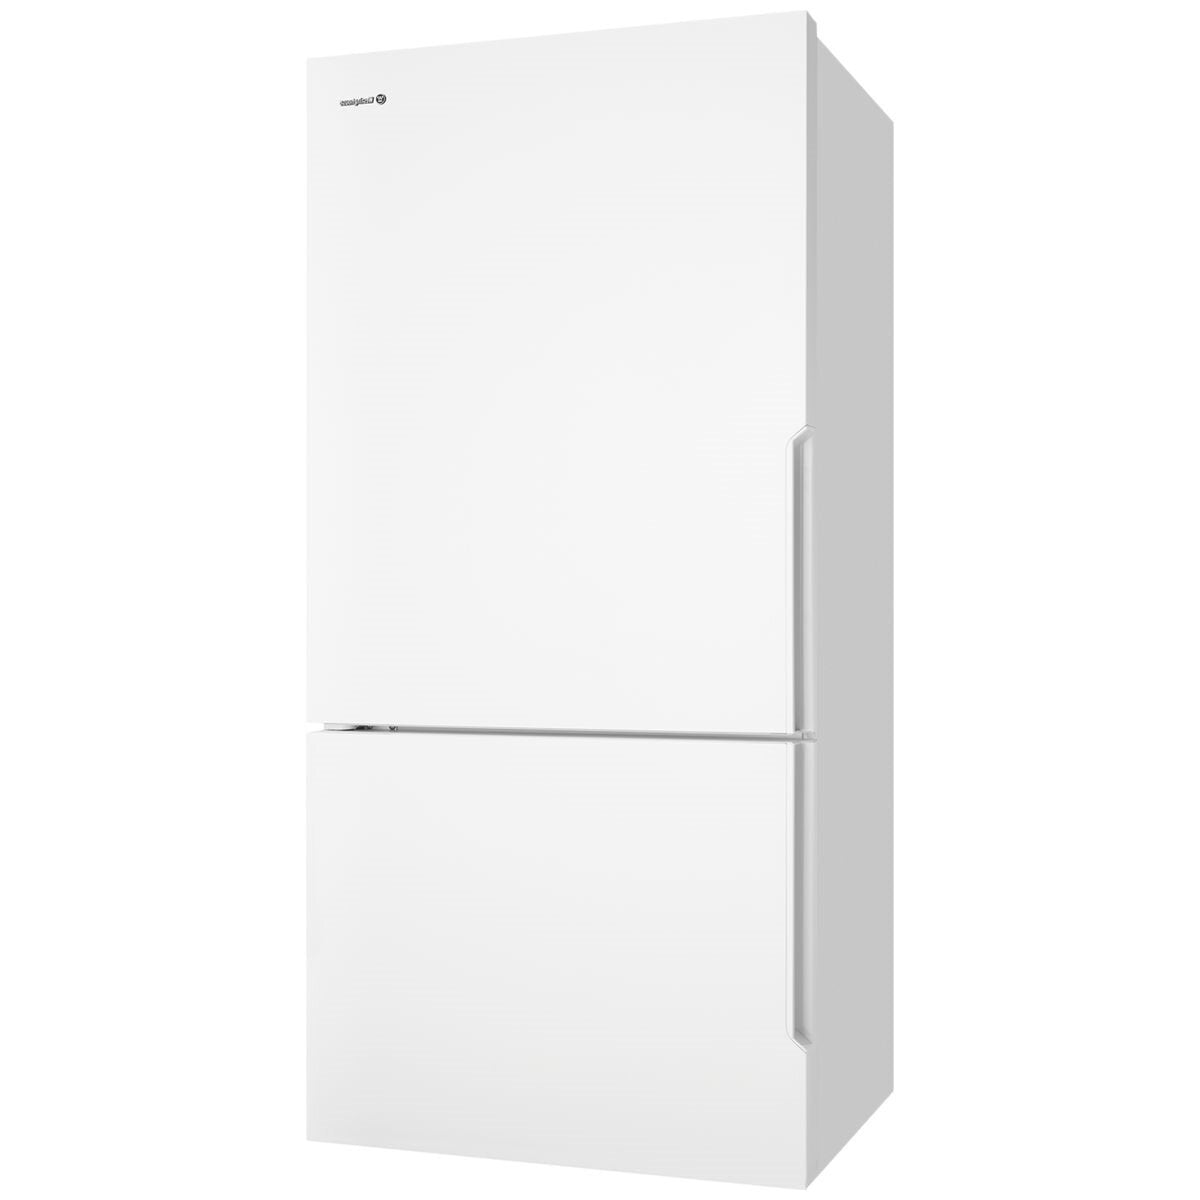 Westinghouse WBE5300WC-L 528L White Bottom Mount Fridge